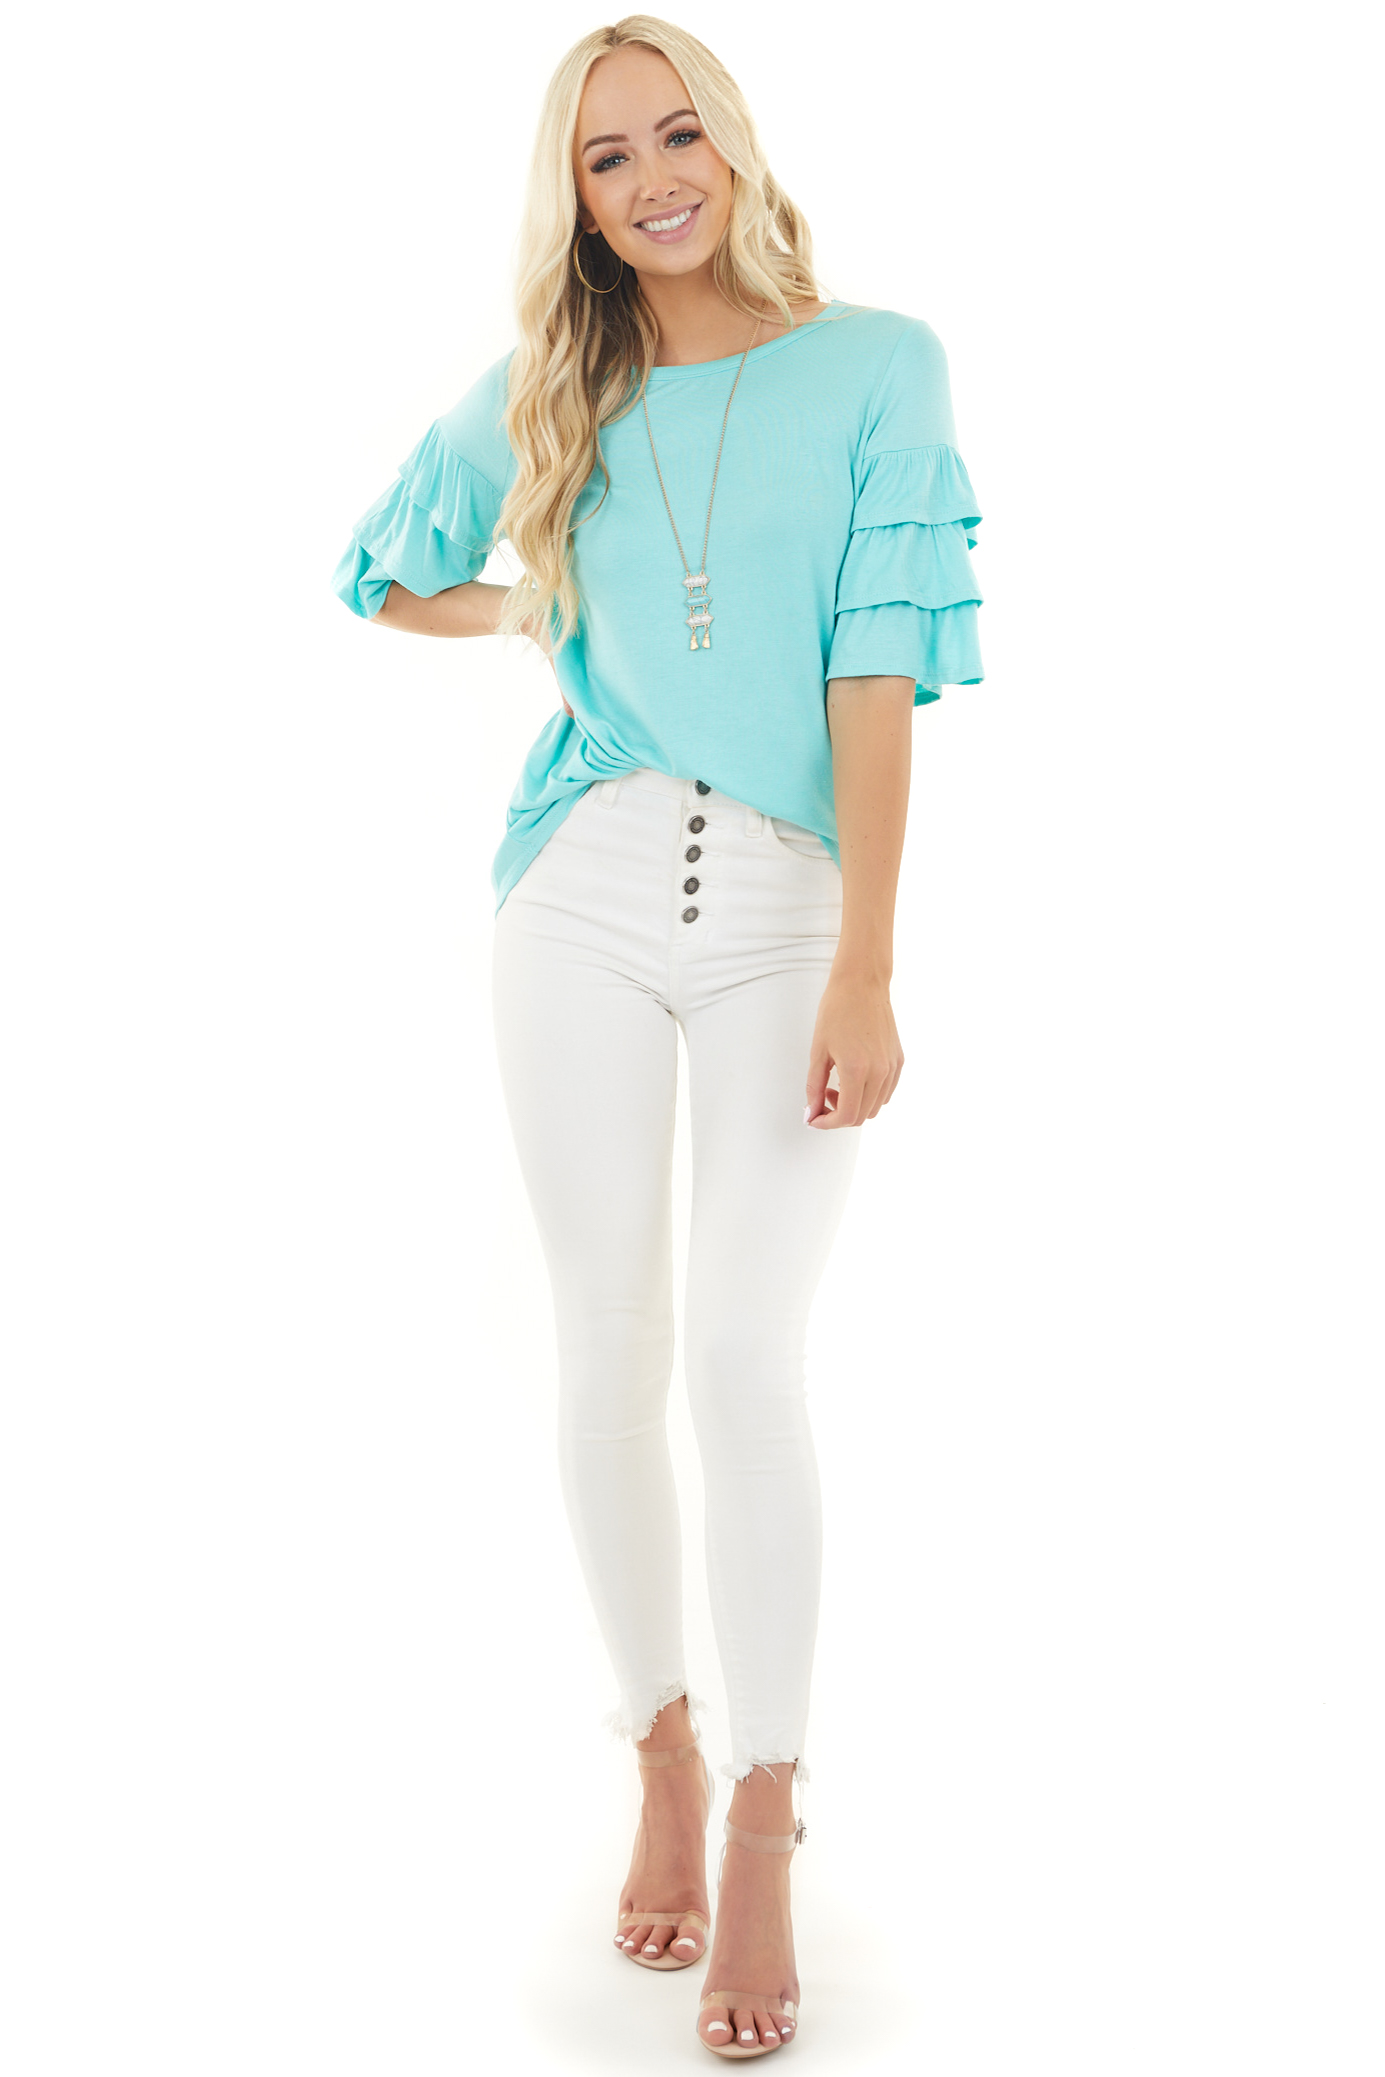 Turquoise Blue Knit Top with Half Length Ruffle Sleeves